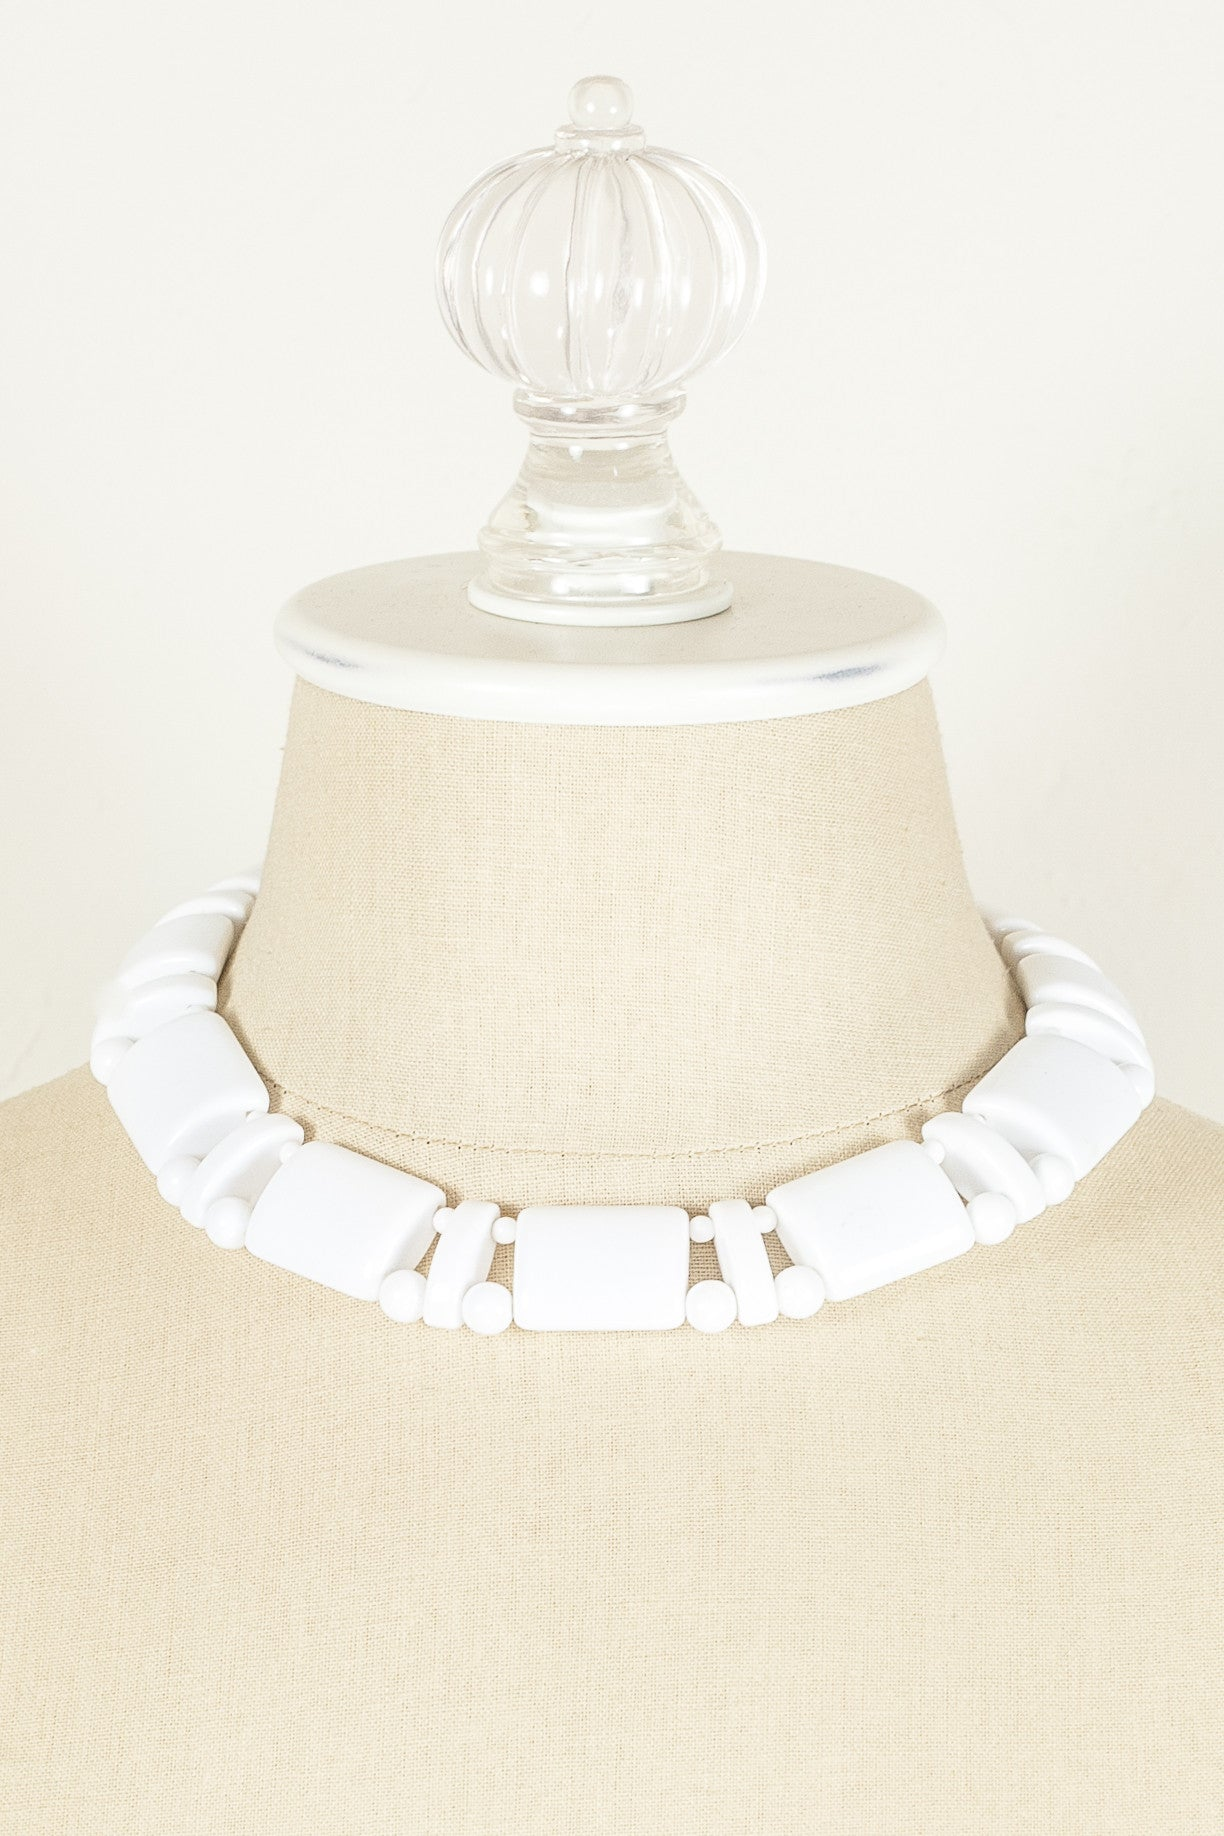 60's__Monet__White Beaded Collar Necklace